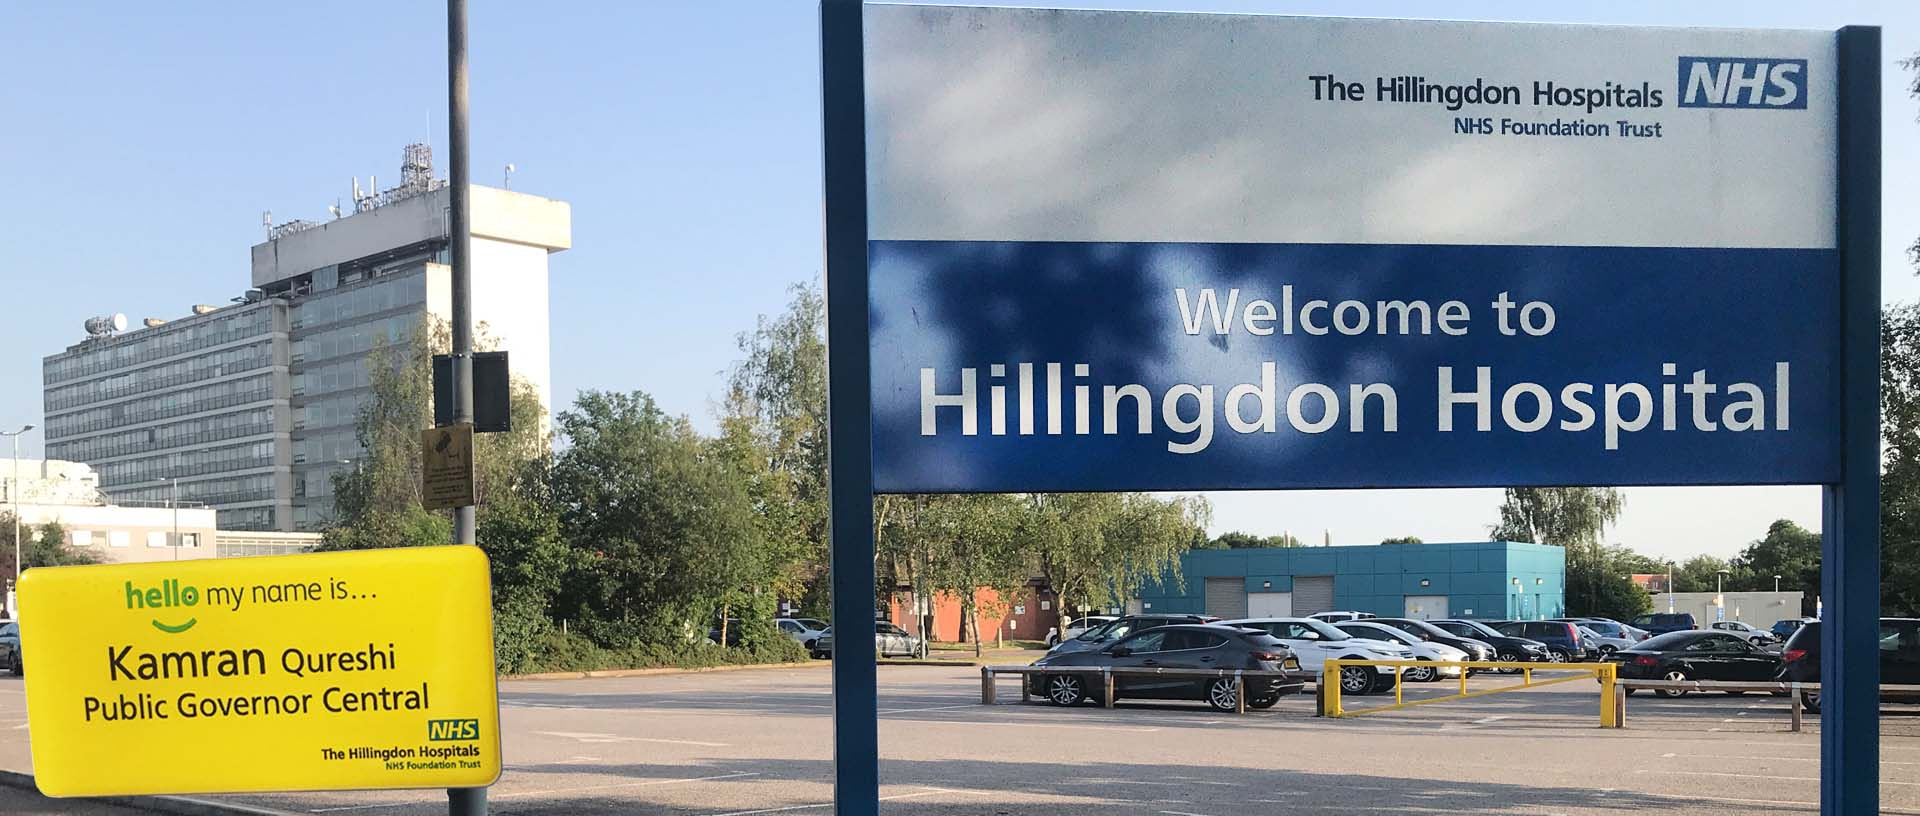 Working as a Public Governor Central at The Hillingdon Hospitals NHS Foundation Trust